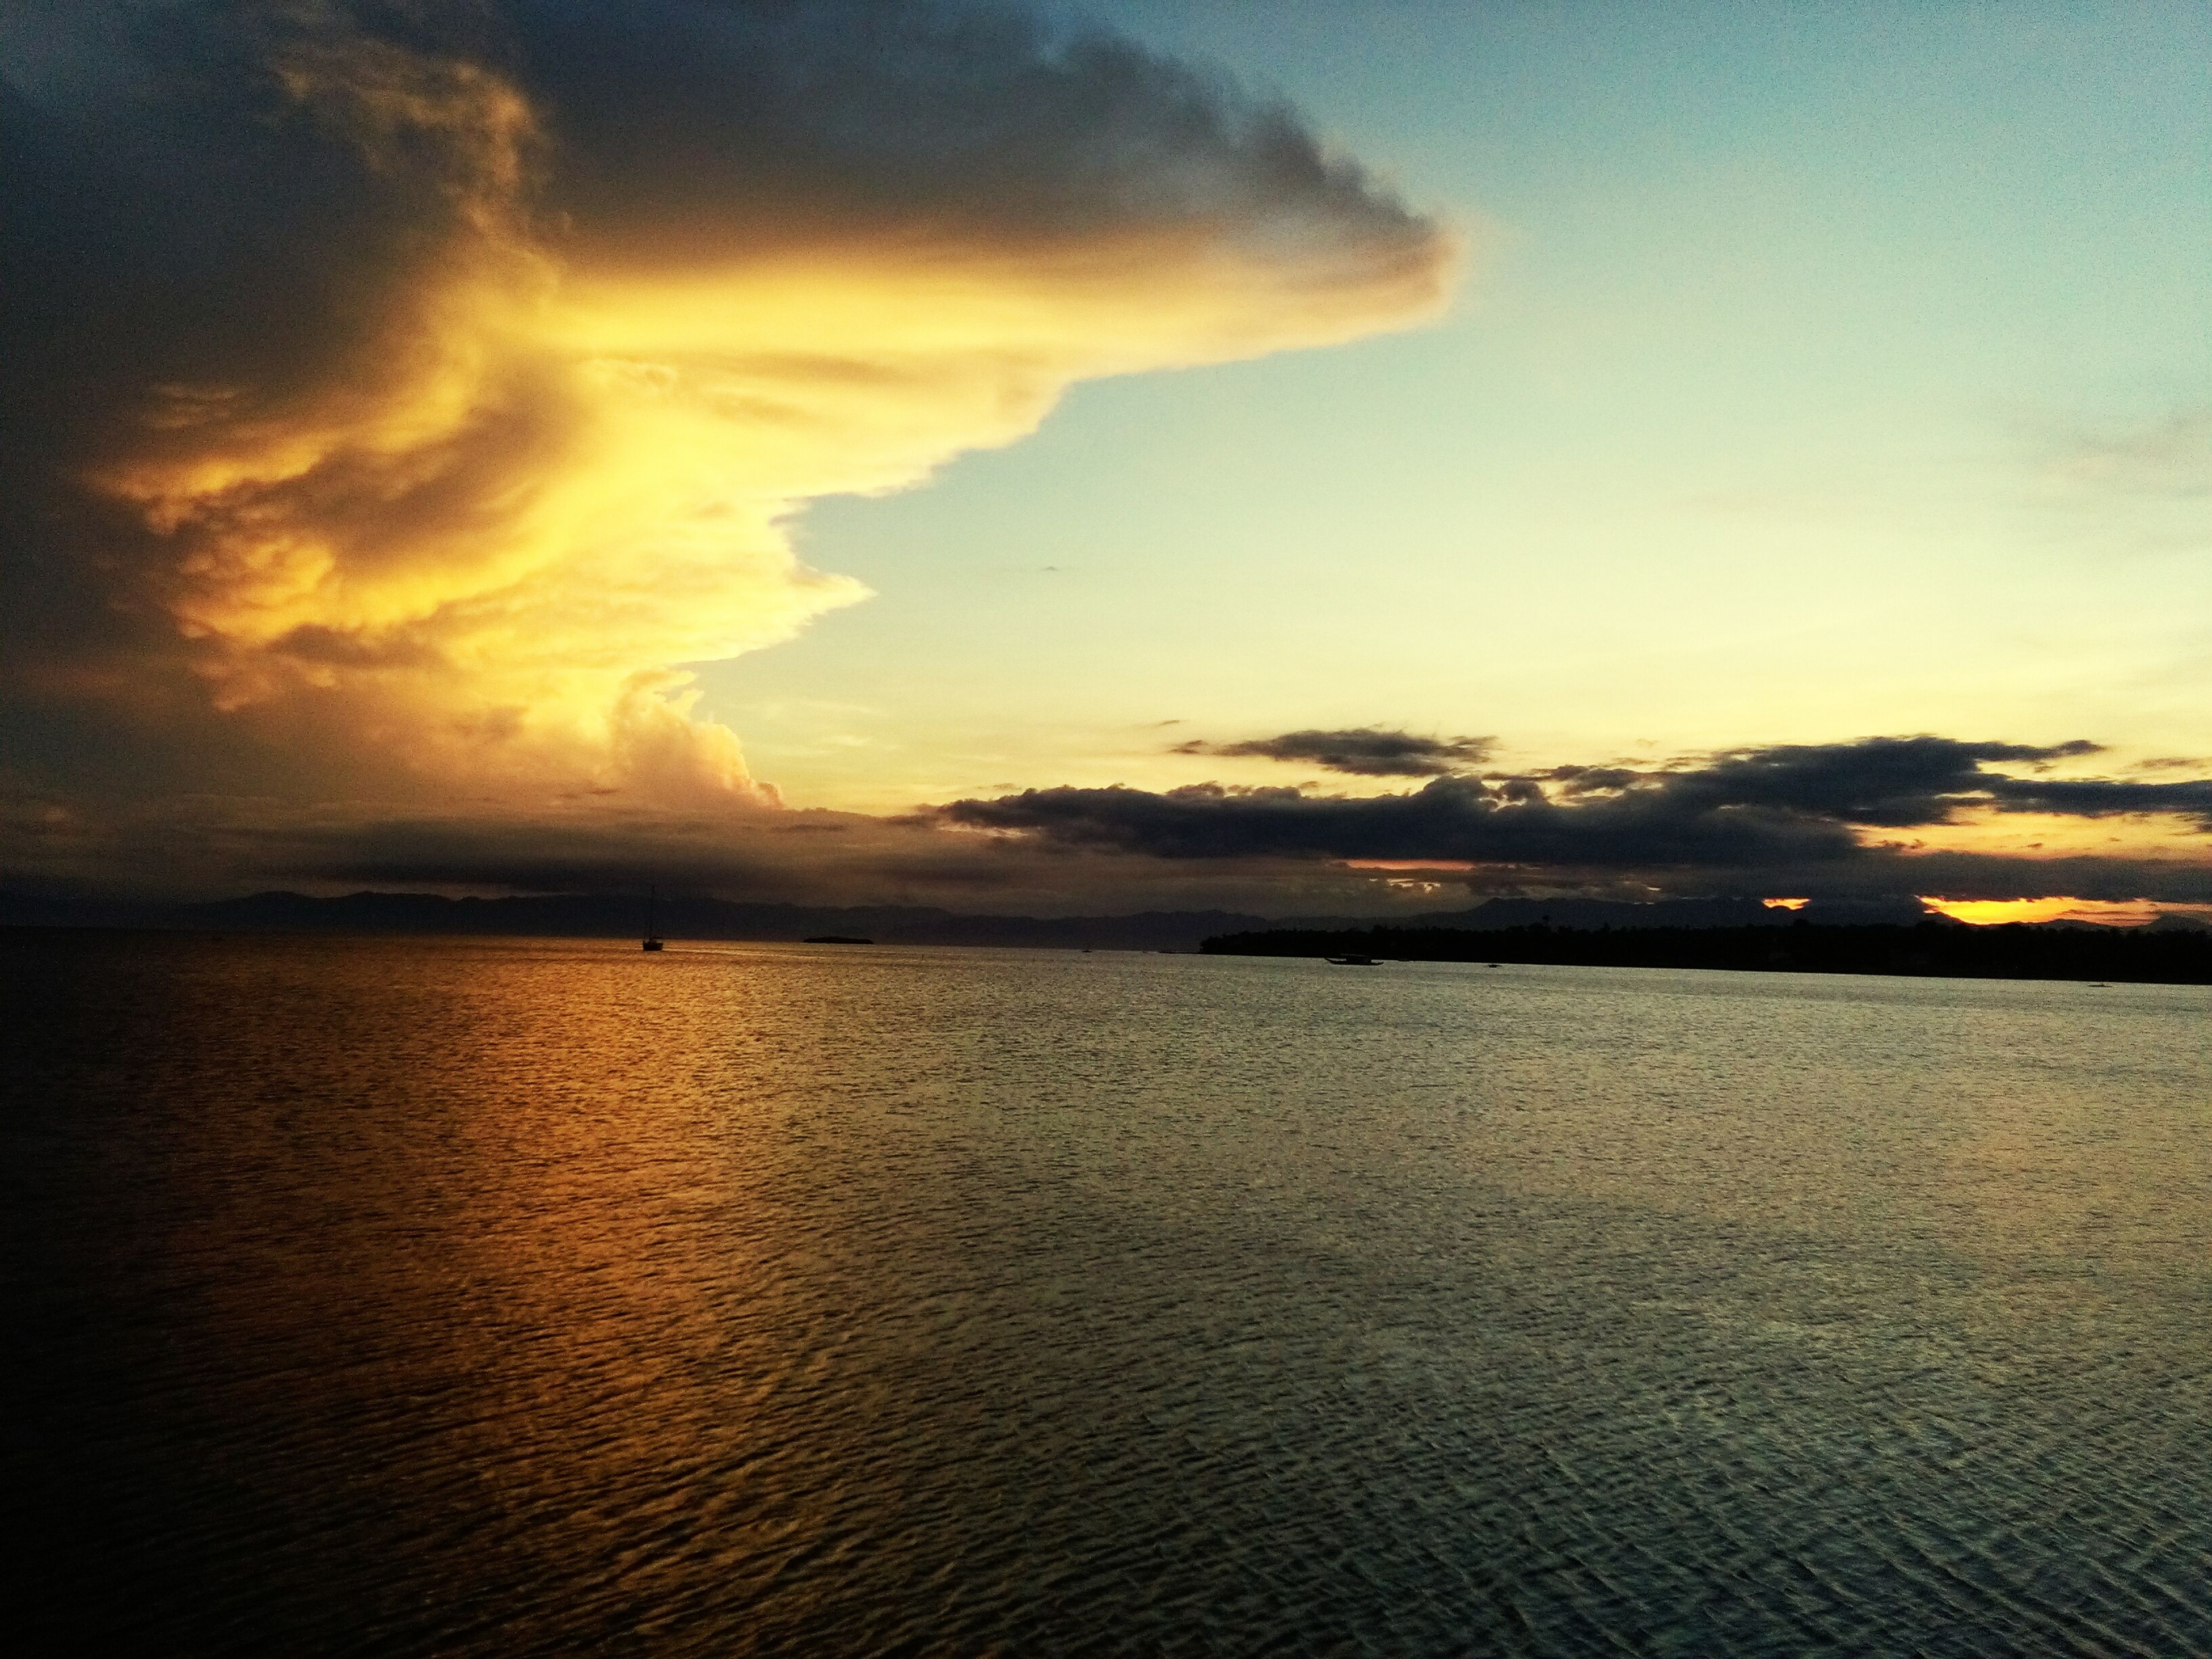 sunset, water, sky, sea, scenics, tranquil scene, beauty in nature, tranquility, cloud - sky, horizon over water, idyllic, nature, waterfront, cloud, cloudy, reflection, orange color, dramatic sky, dusk, outdoors